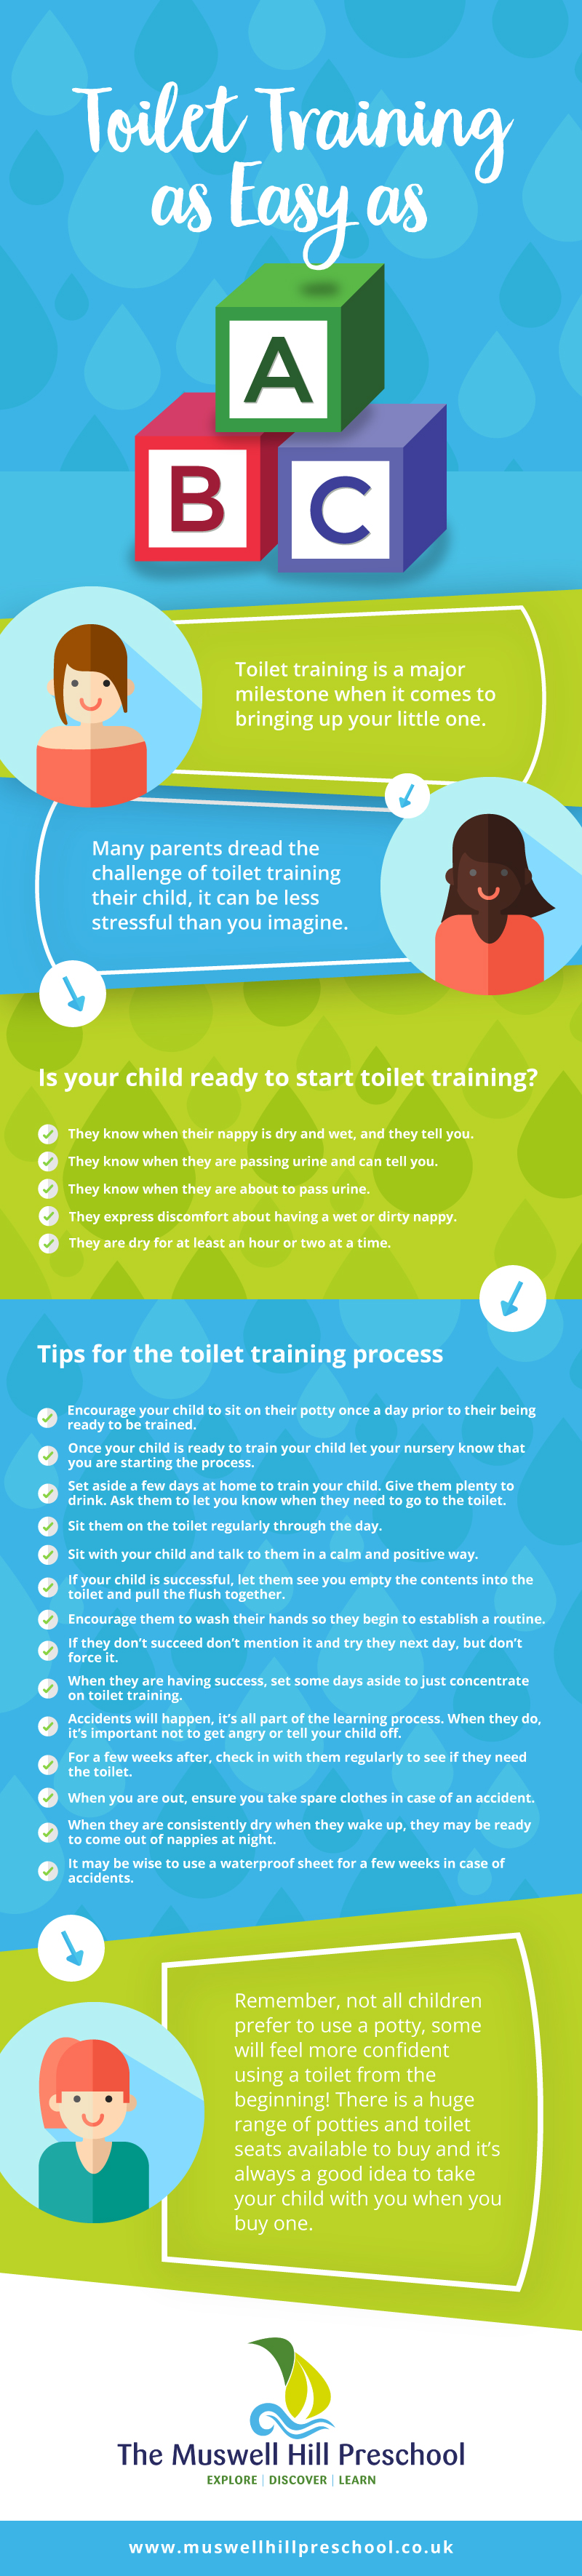 Toilet Training as easy as ABC